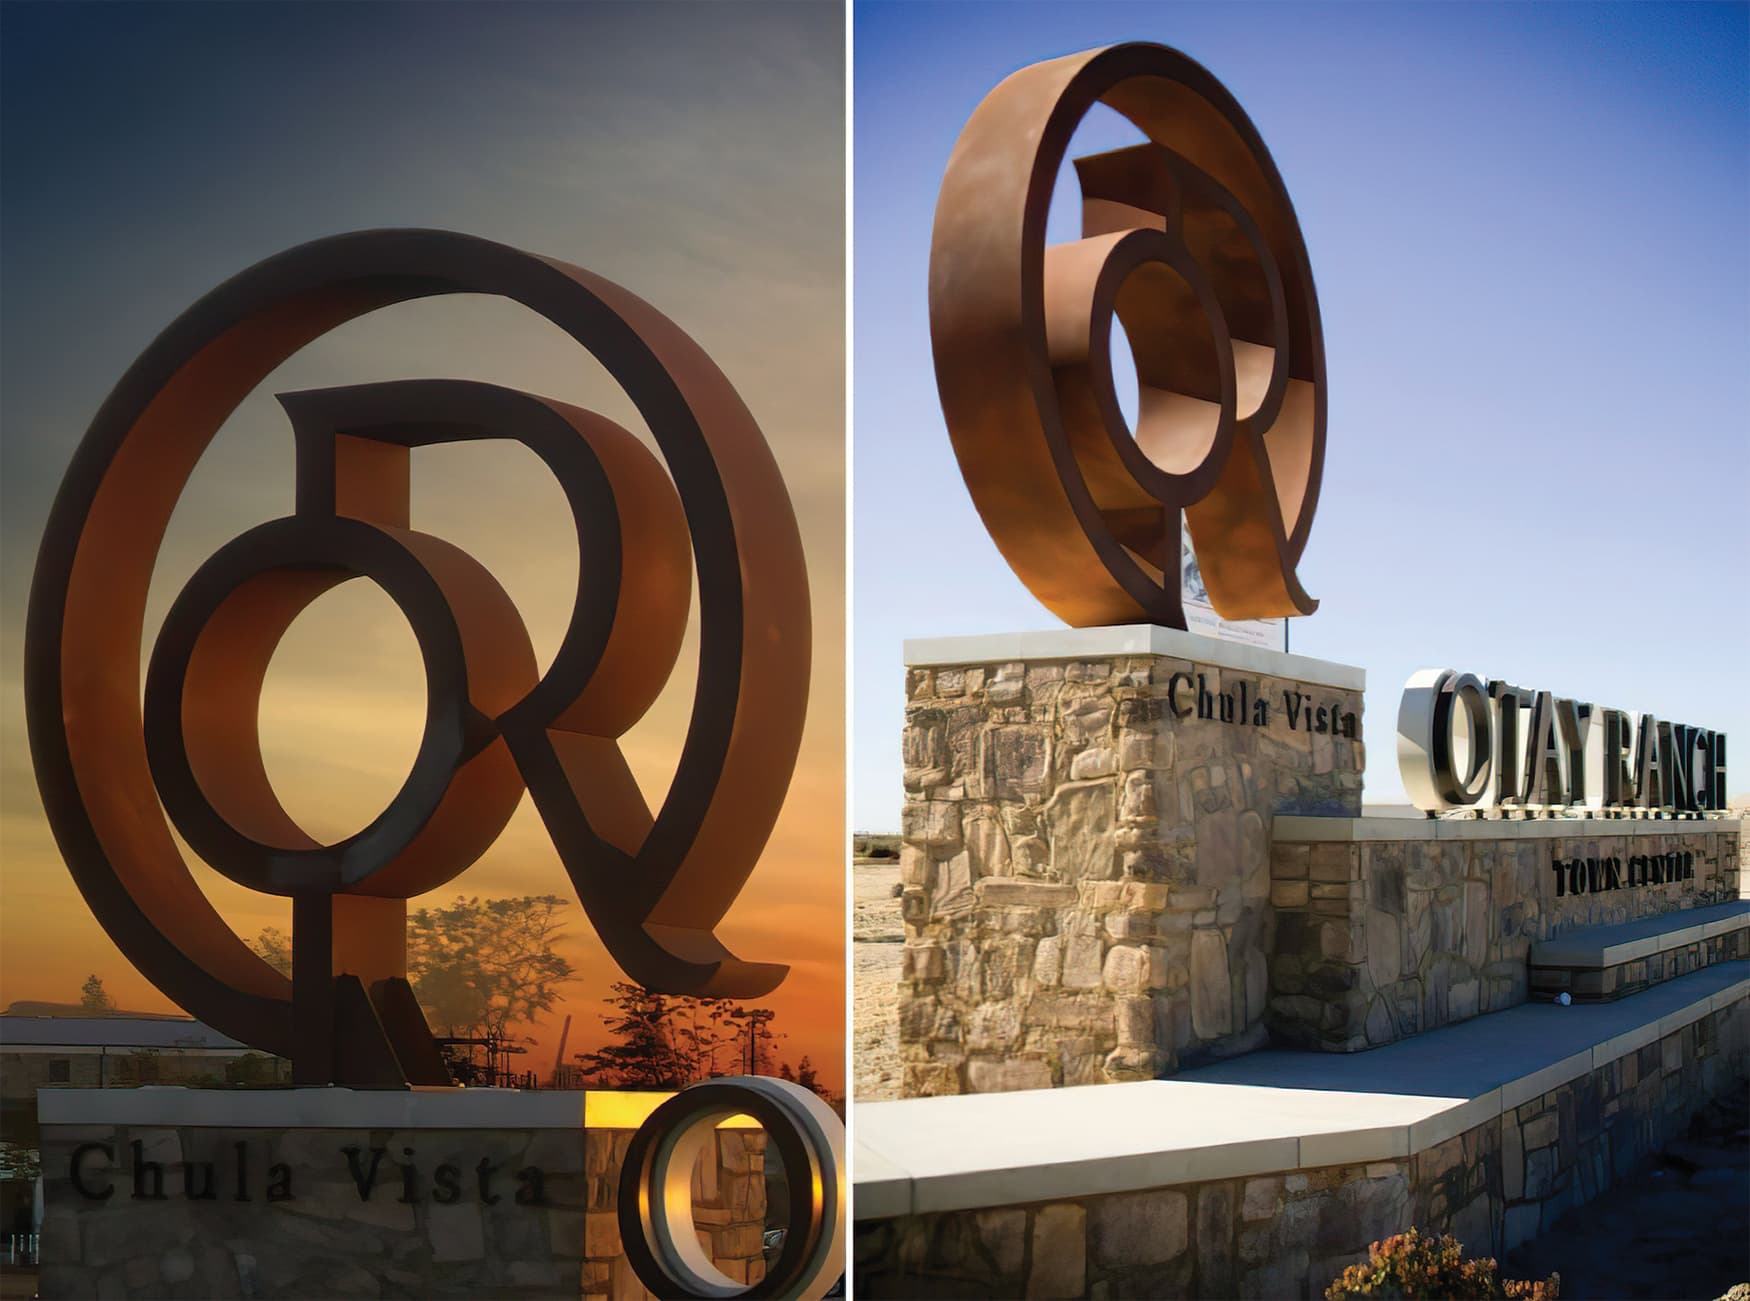 Otay Ranch, an outdoor retail development. Project Identity Signage. Project Monument Signage.